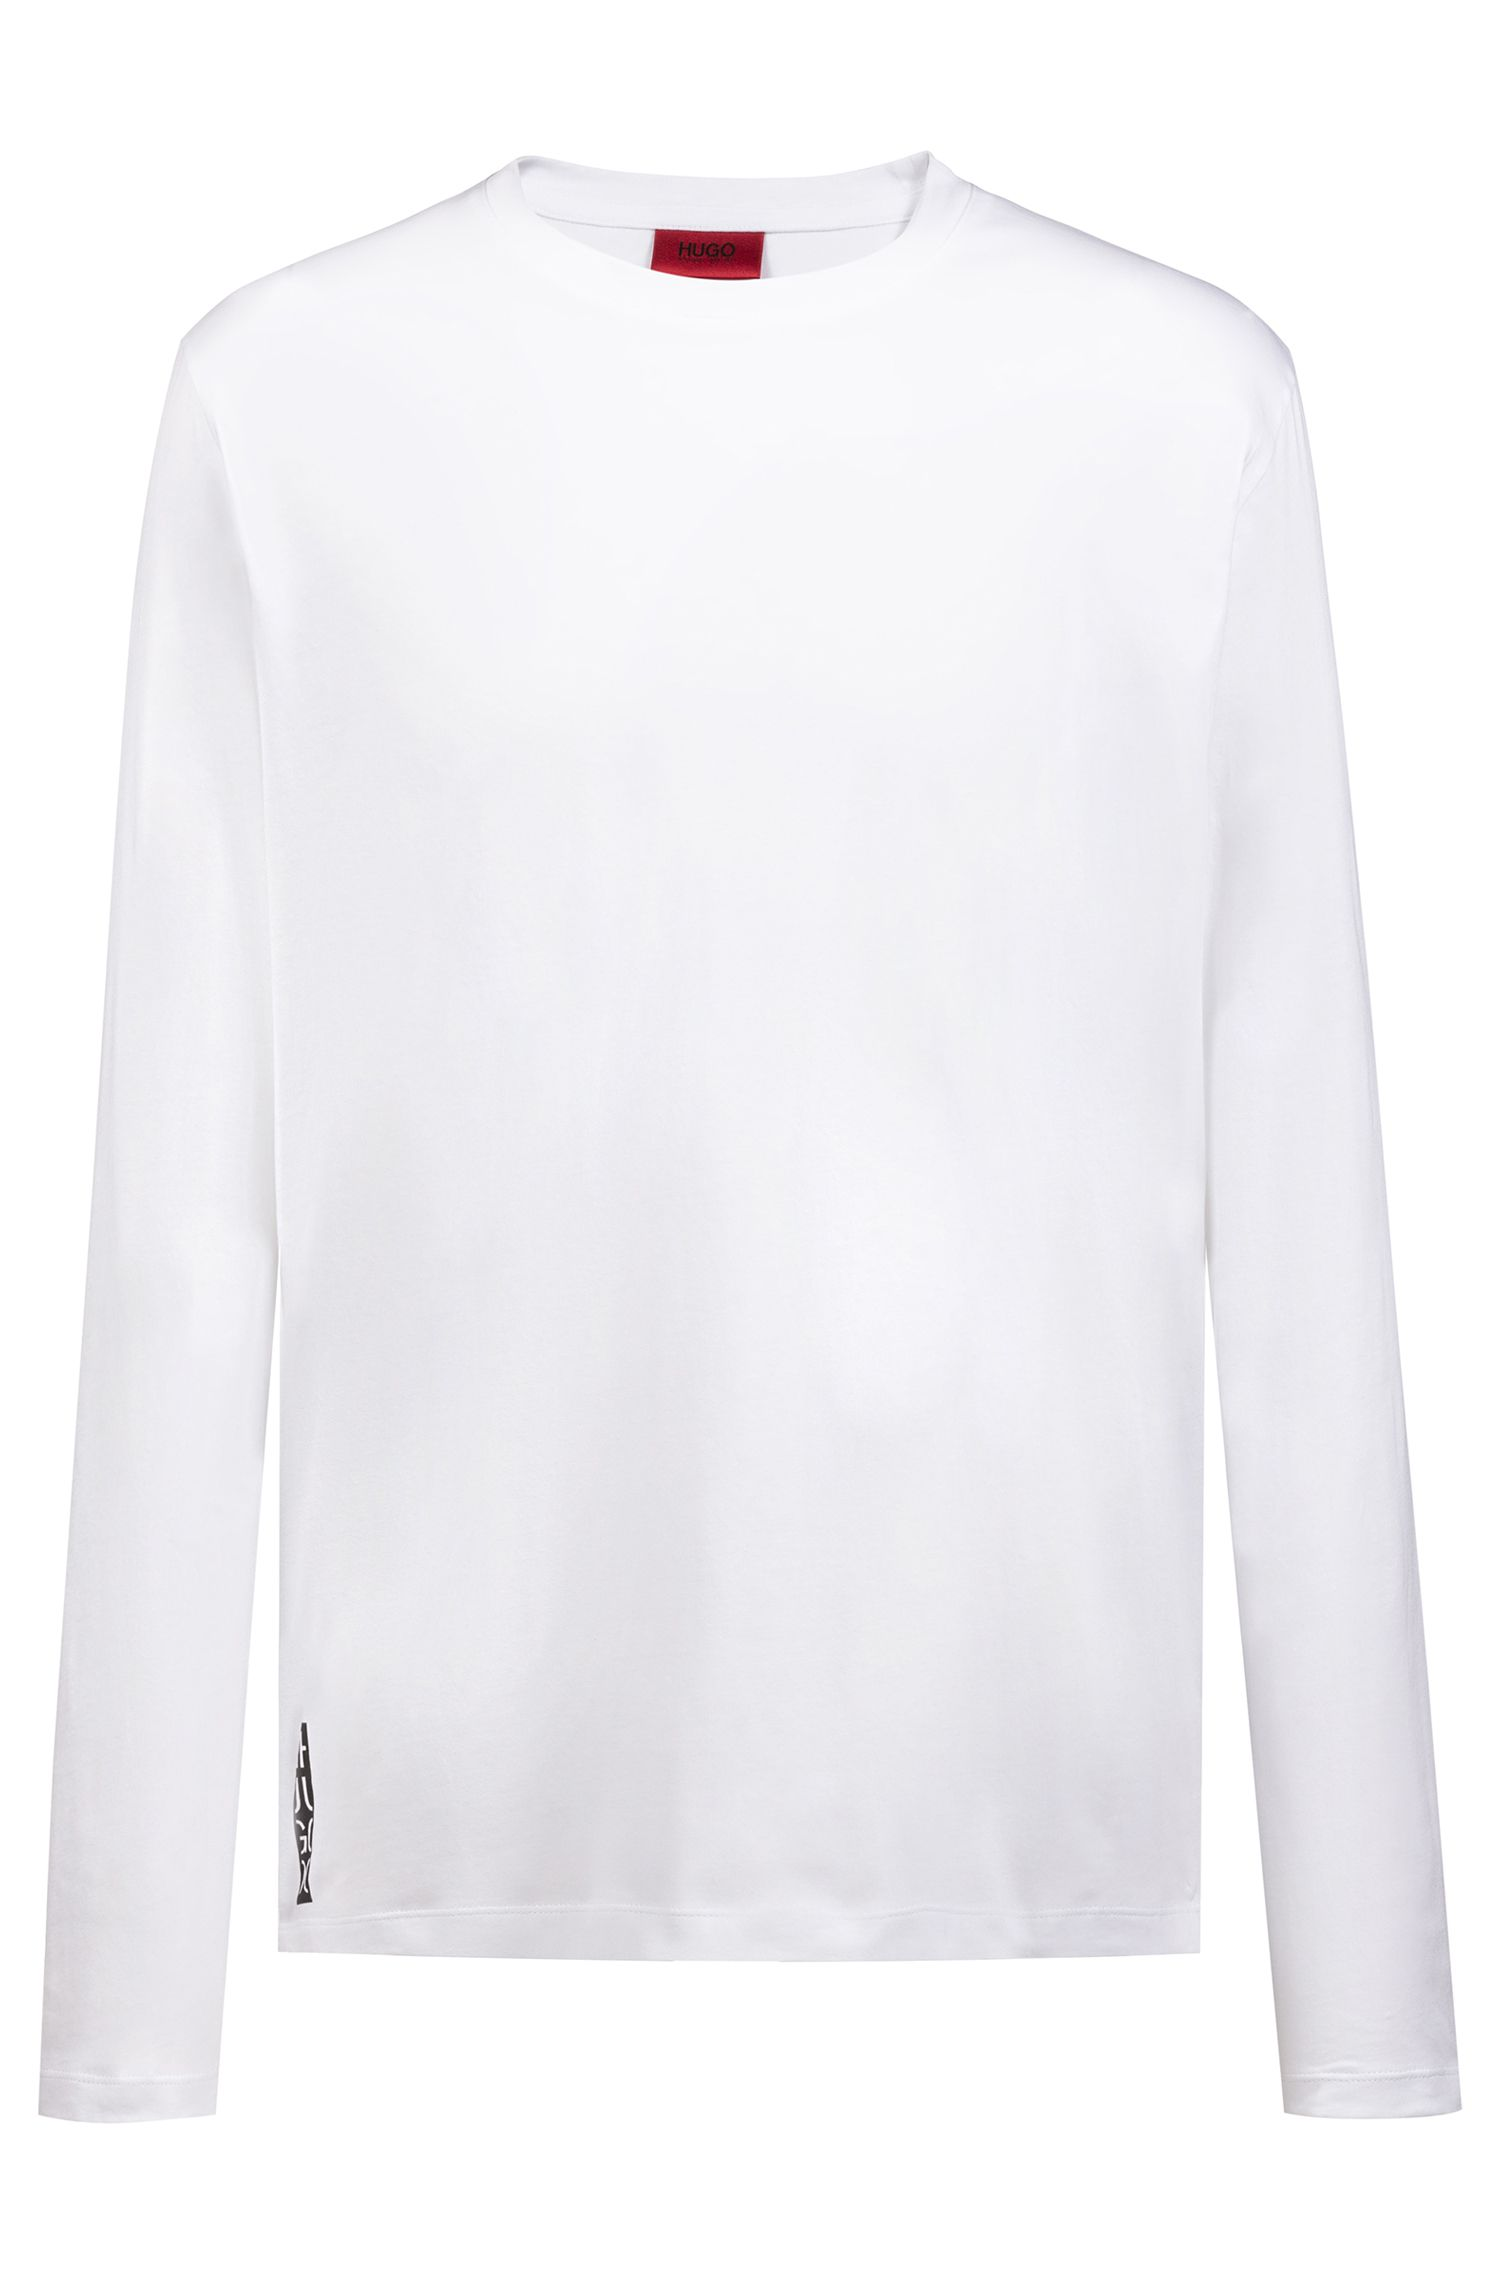 Relaxed-fit long-sleeved T-shirt with logo-inspired graphic, White